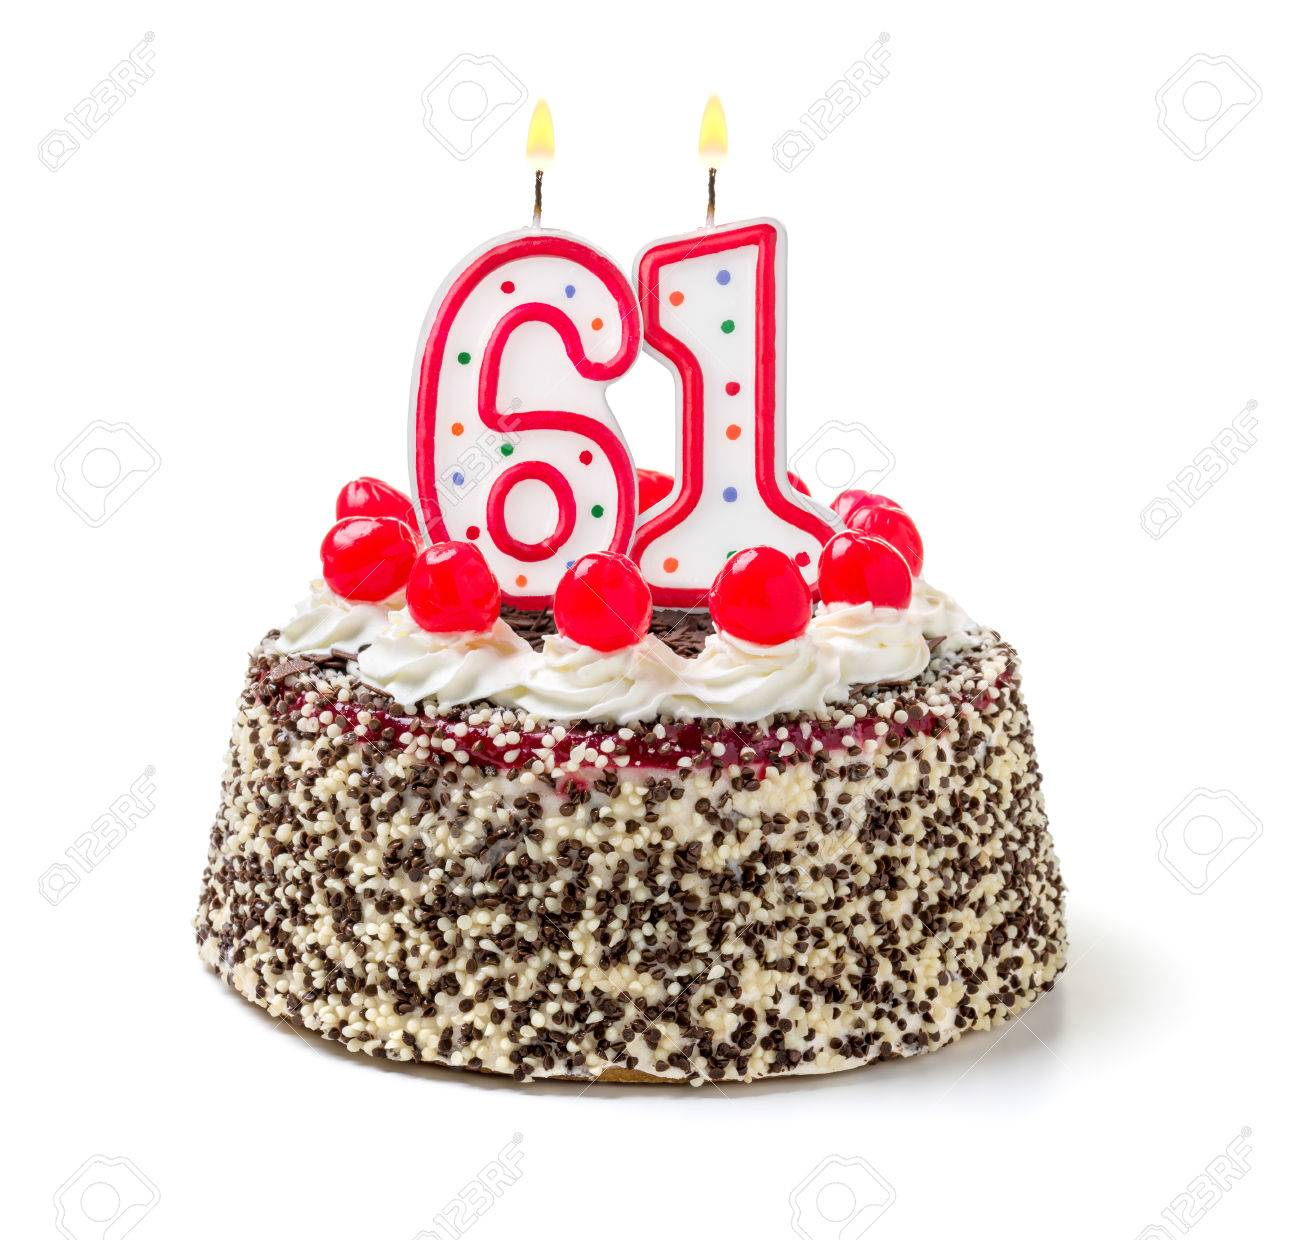 Birthday cake with burning candle number 61 Stock Photo - 32590286